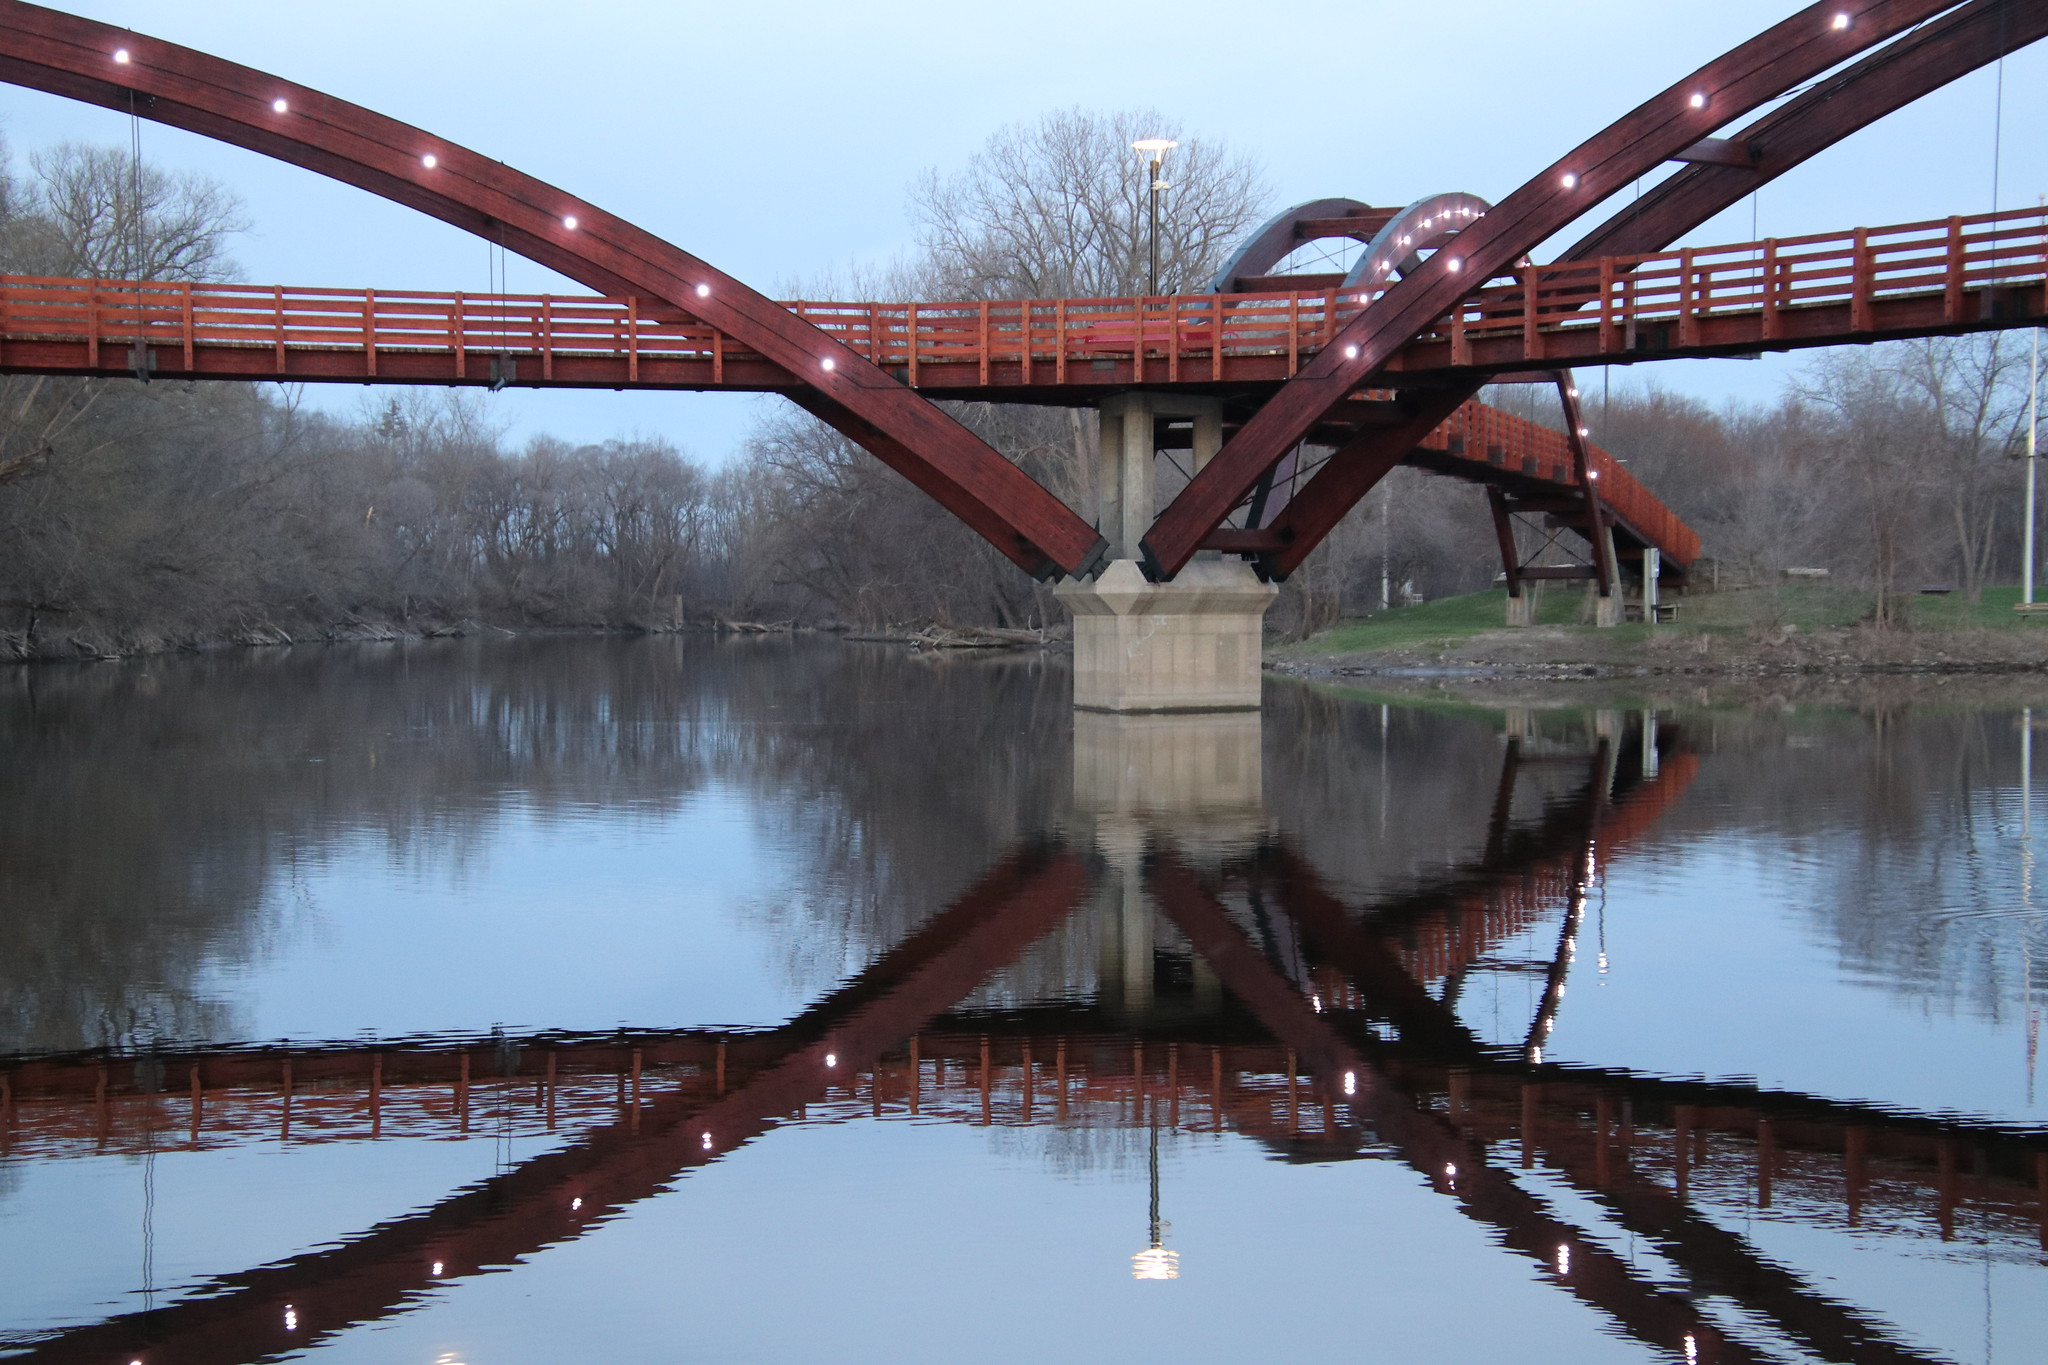 Early Morning at The Tridge - Midland, Michigan. Image credit: Corey Seeman